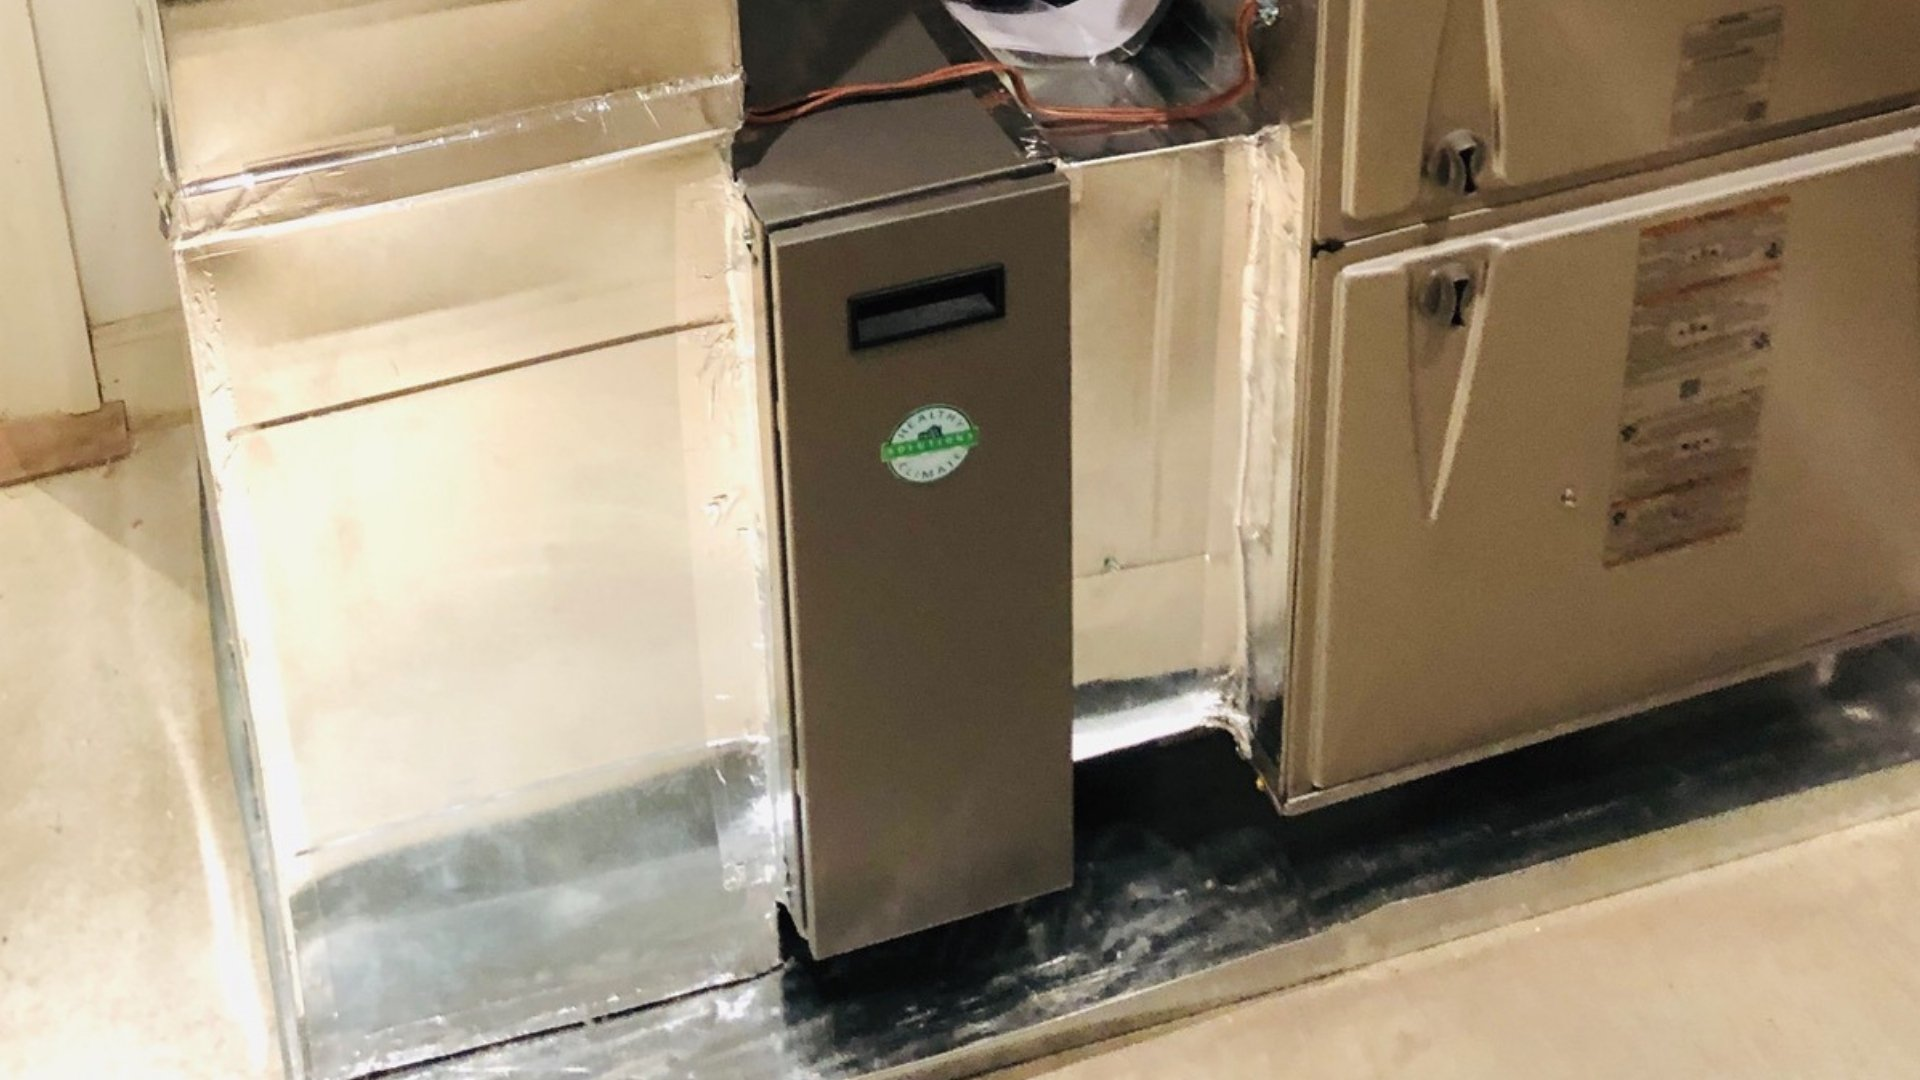 Lennox Air Purification System Installed